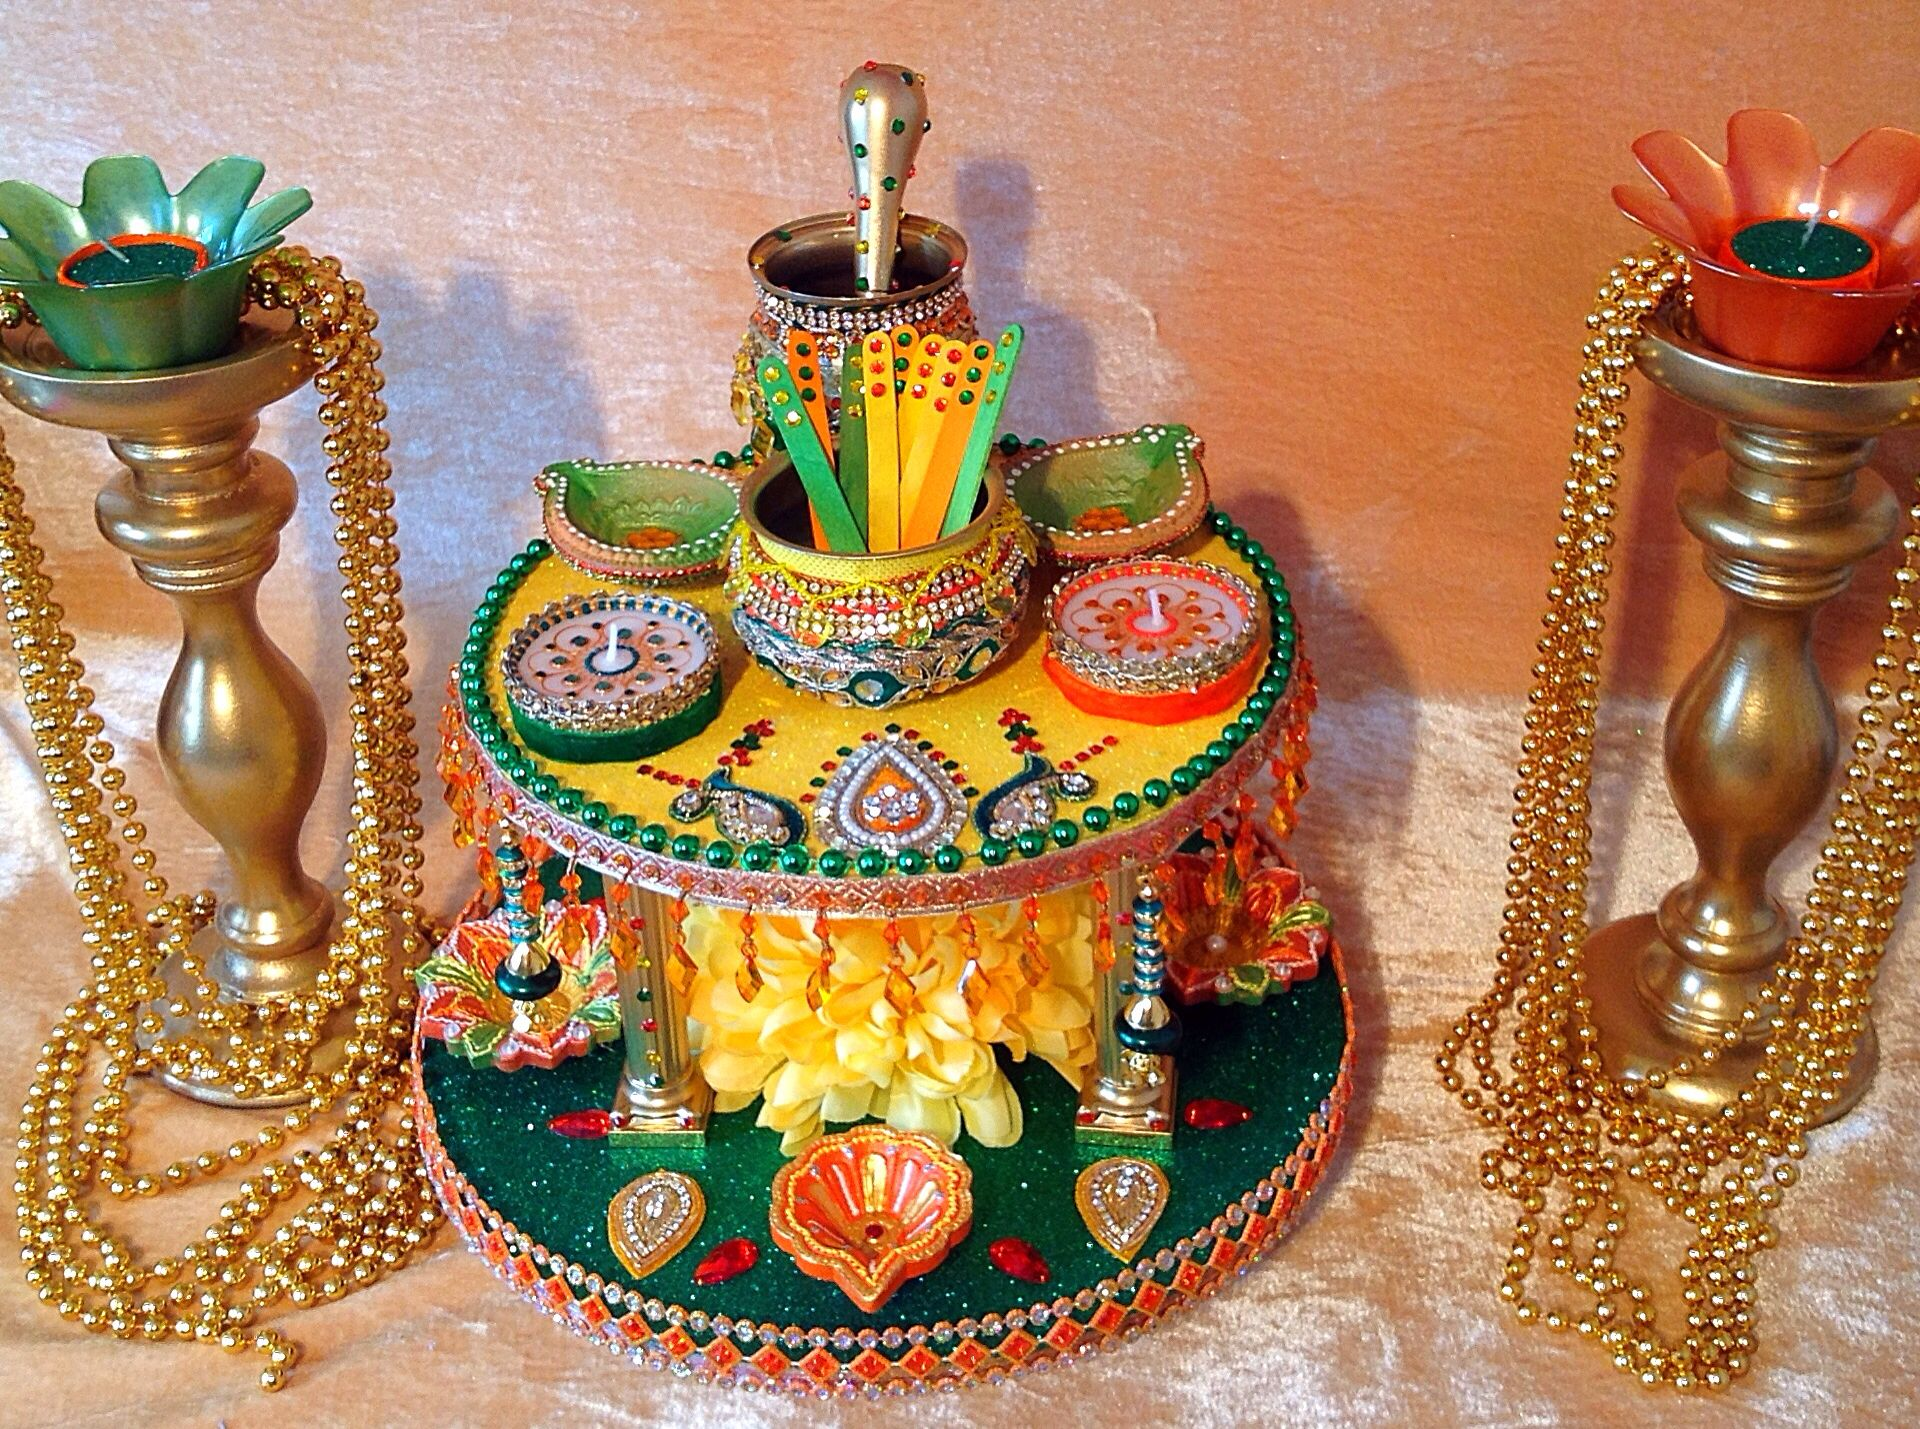 Mehndi Plates Images : A stunning double tiered mehndi plate. see my facebook page www